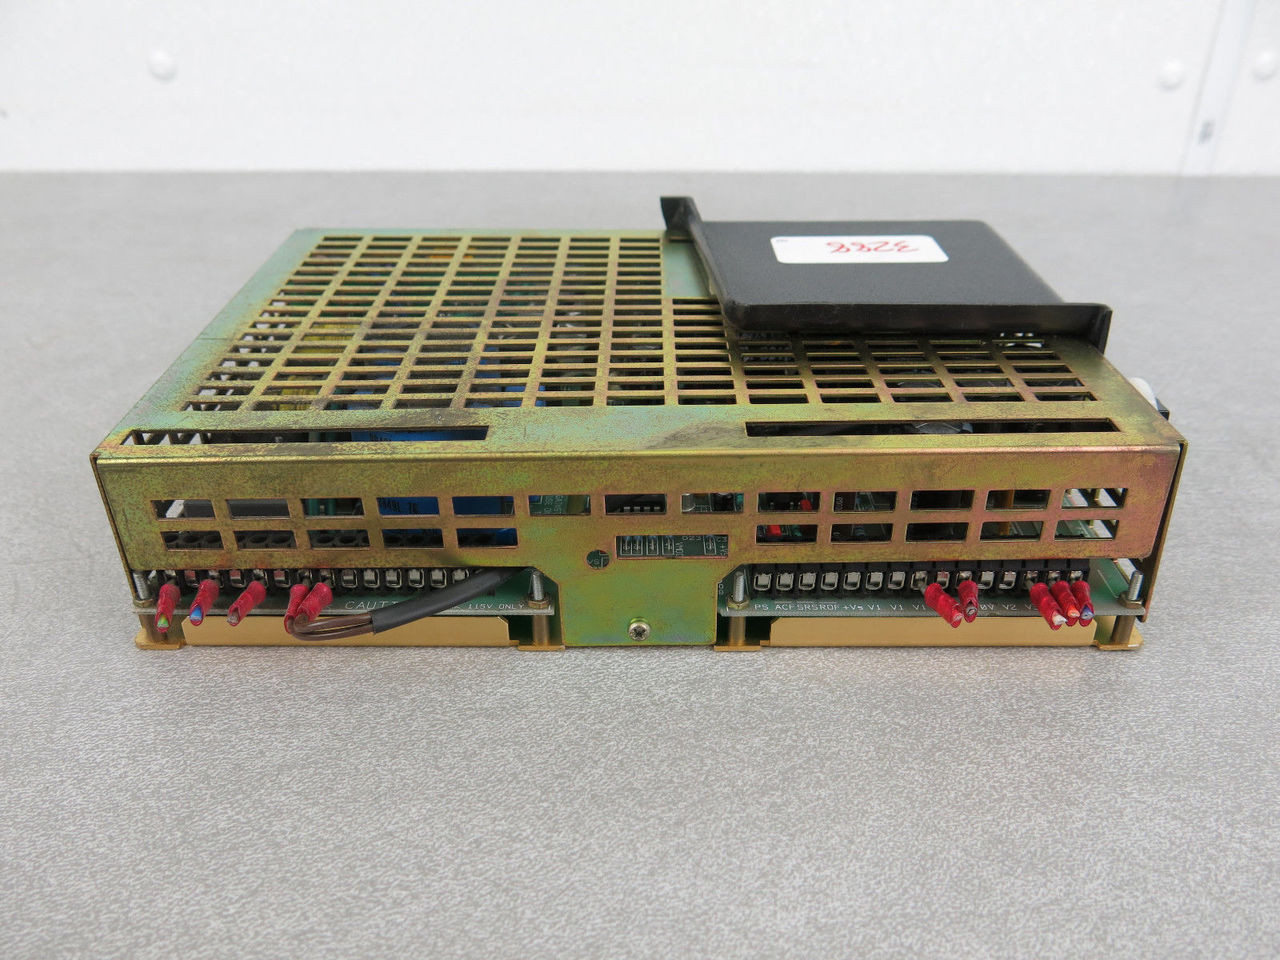 Artesyn Power Supply LX200 5V 20A 12V 8A 24V 4A